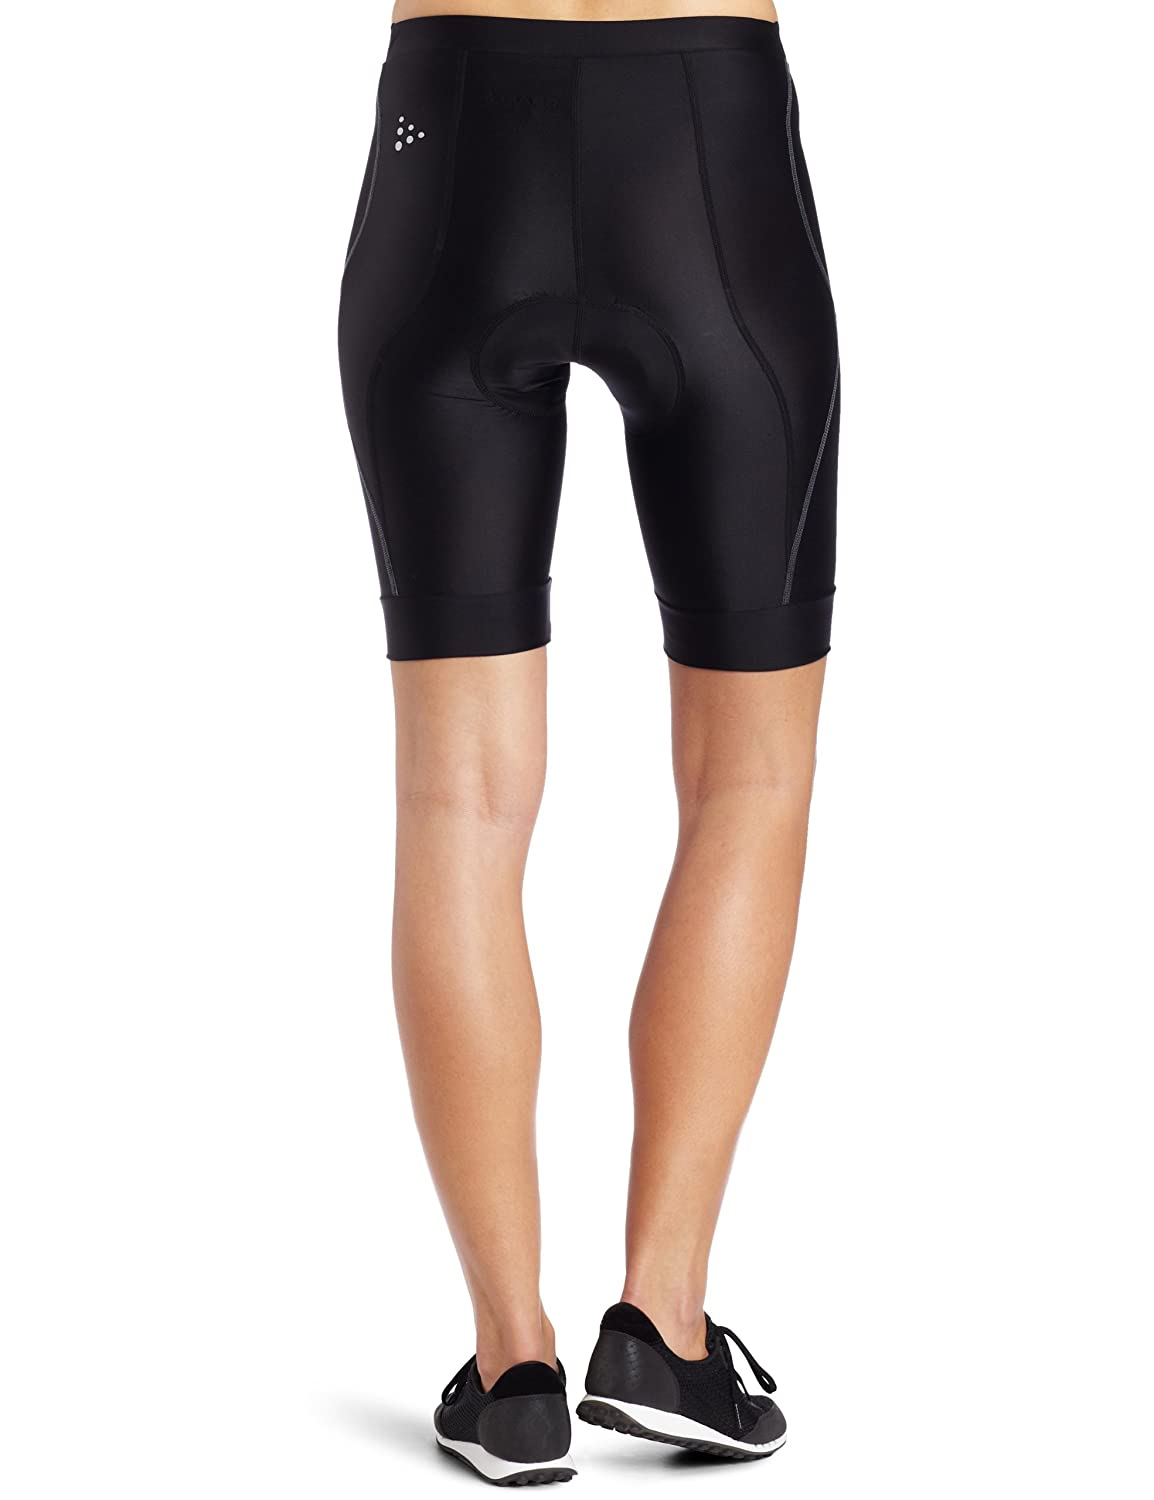 protective//riding//compression//cooling Craft Sportswear Womens AB Bike Cycling Padded Tight Short with Elastic Leg Grips